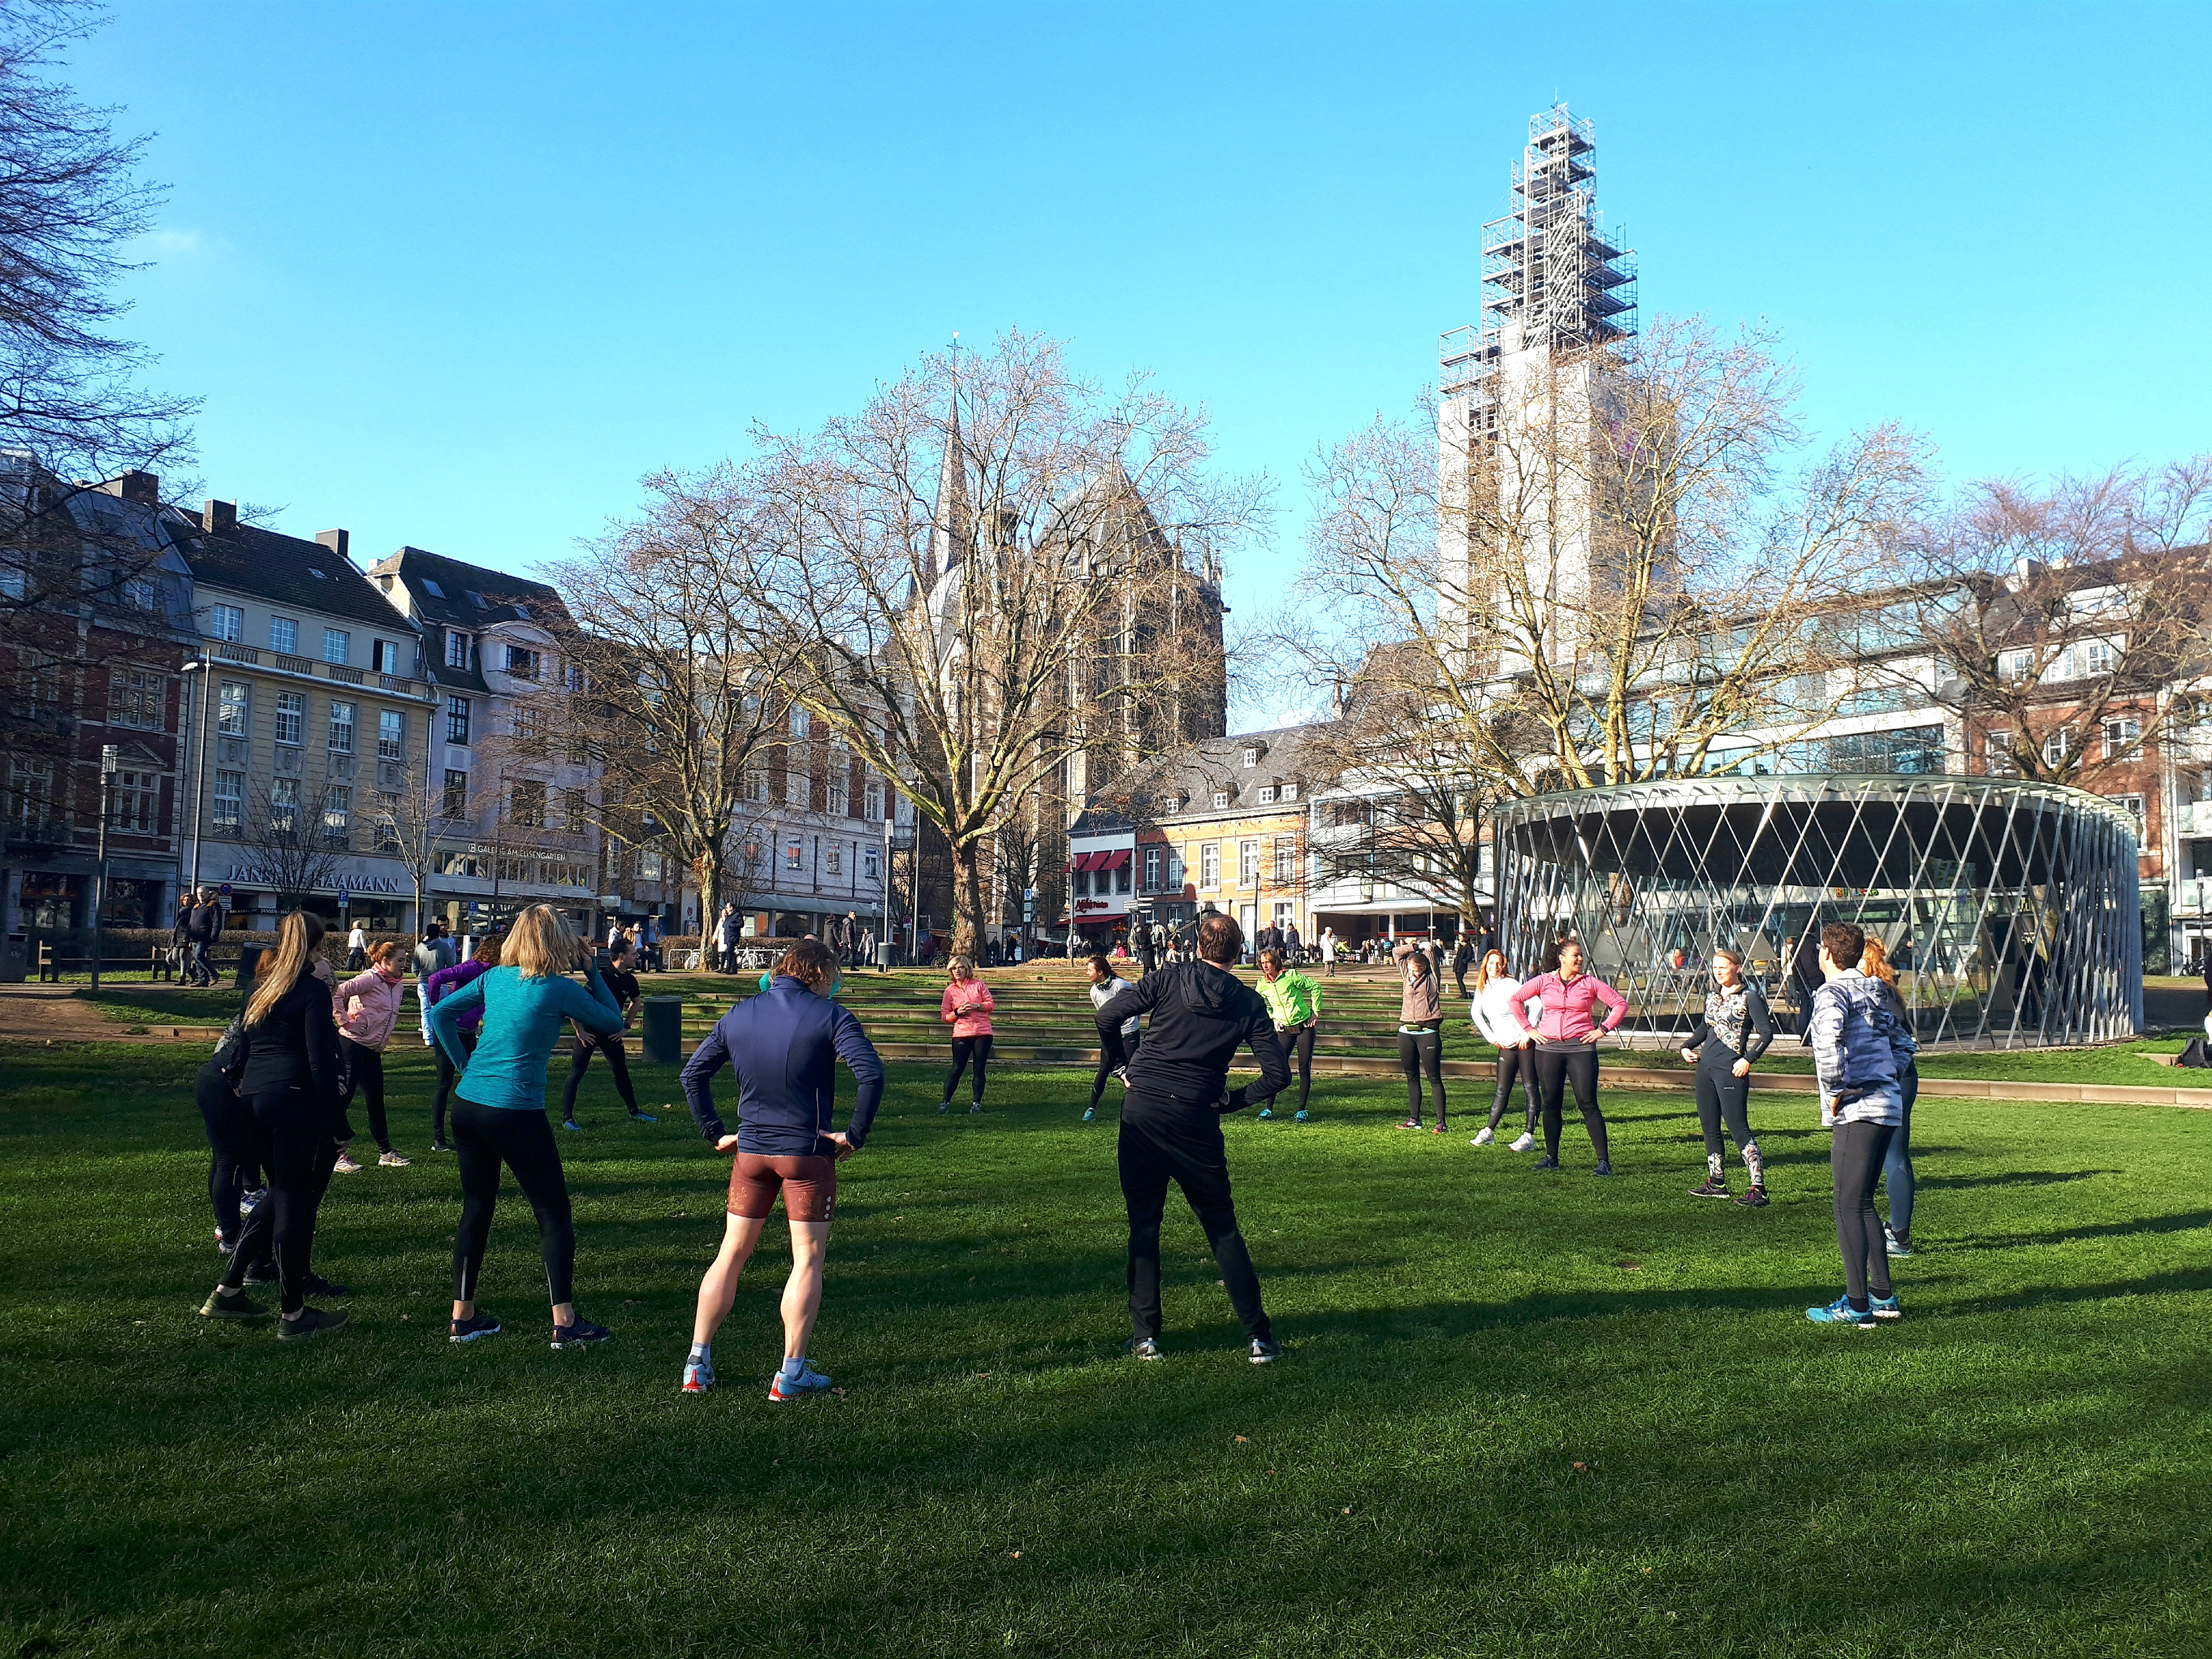 Hardlopen in Aken, warming-up